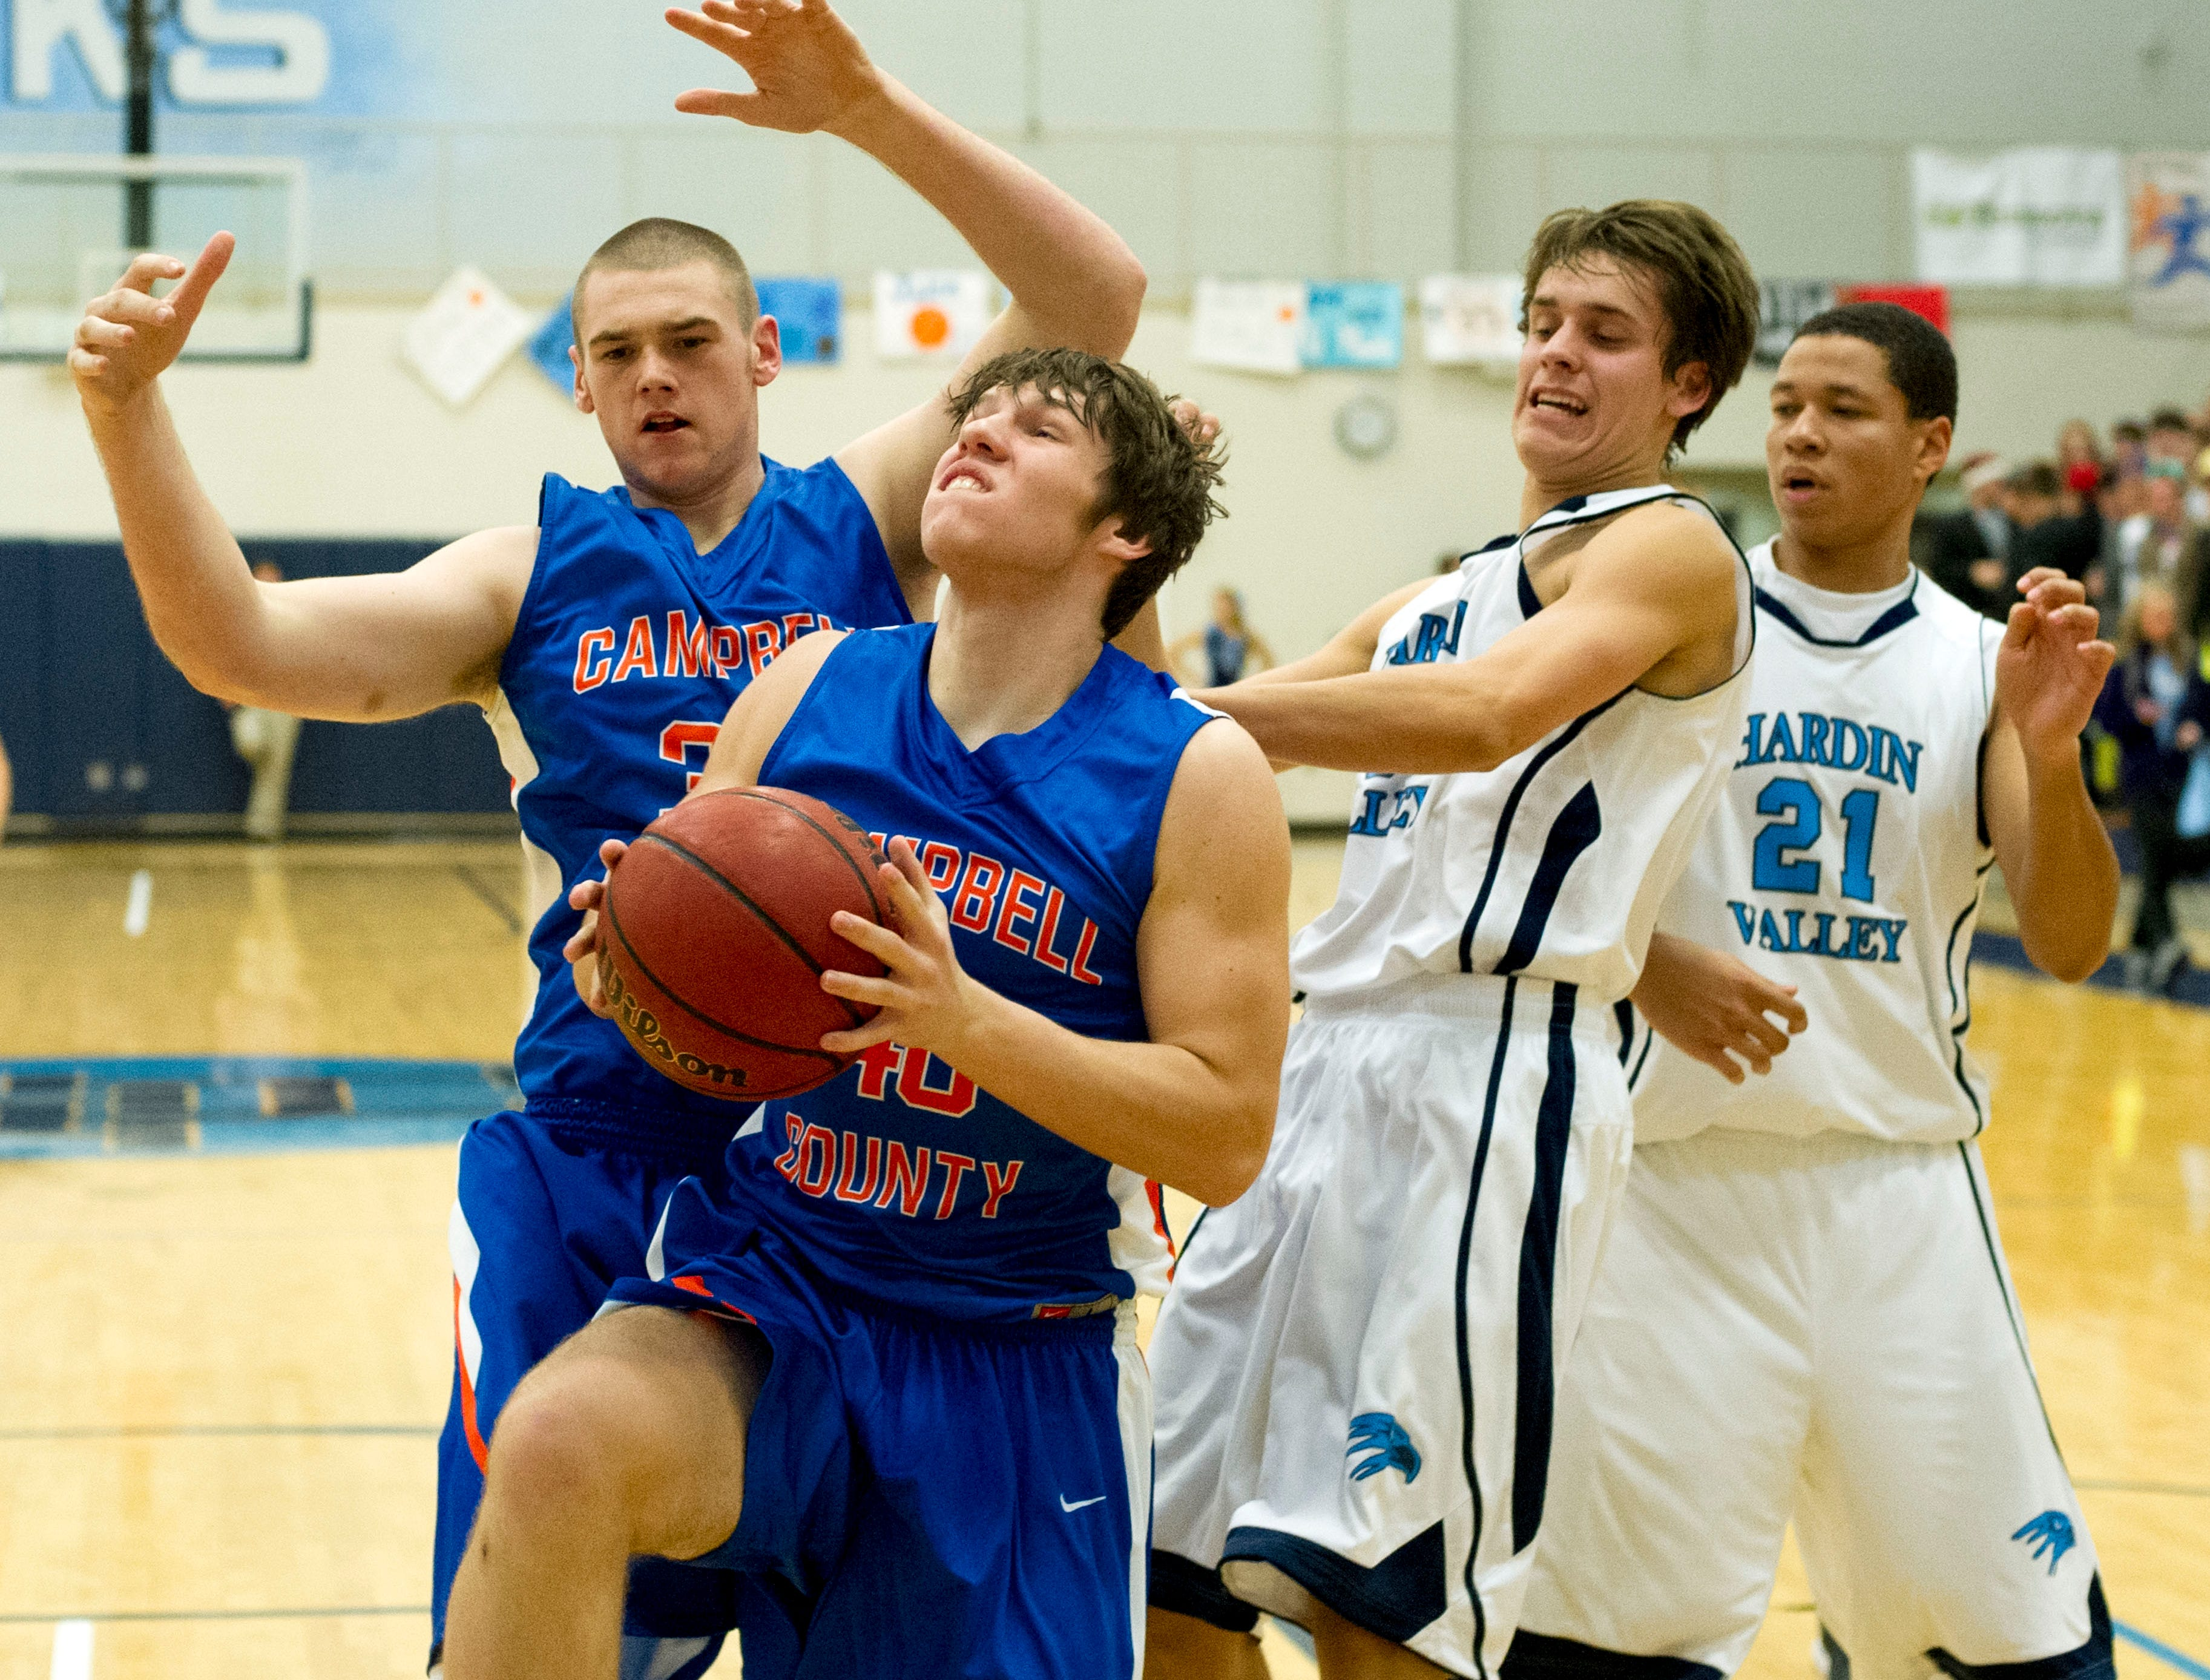 Campbell County's Rosnor Letner looks to the basket while supported by teammate Gunner St. John and defended by Hardin Valley's Daniel Linebaugh, left, and Jalen Carter at Hardin Valley Academy on Thursday, December 13, 2012.